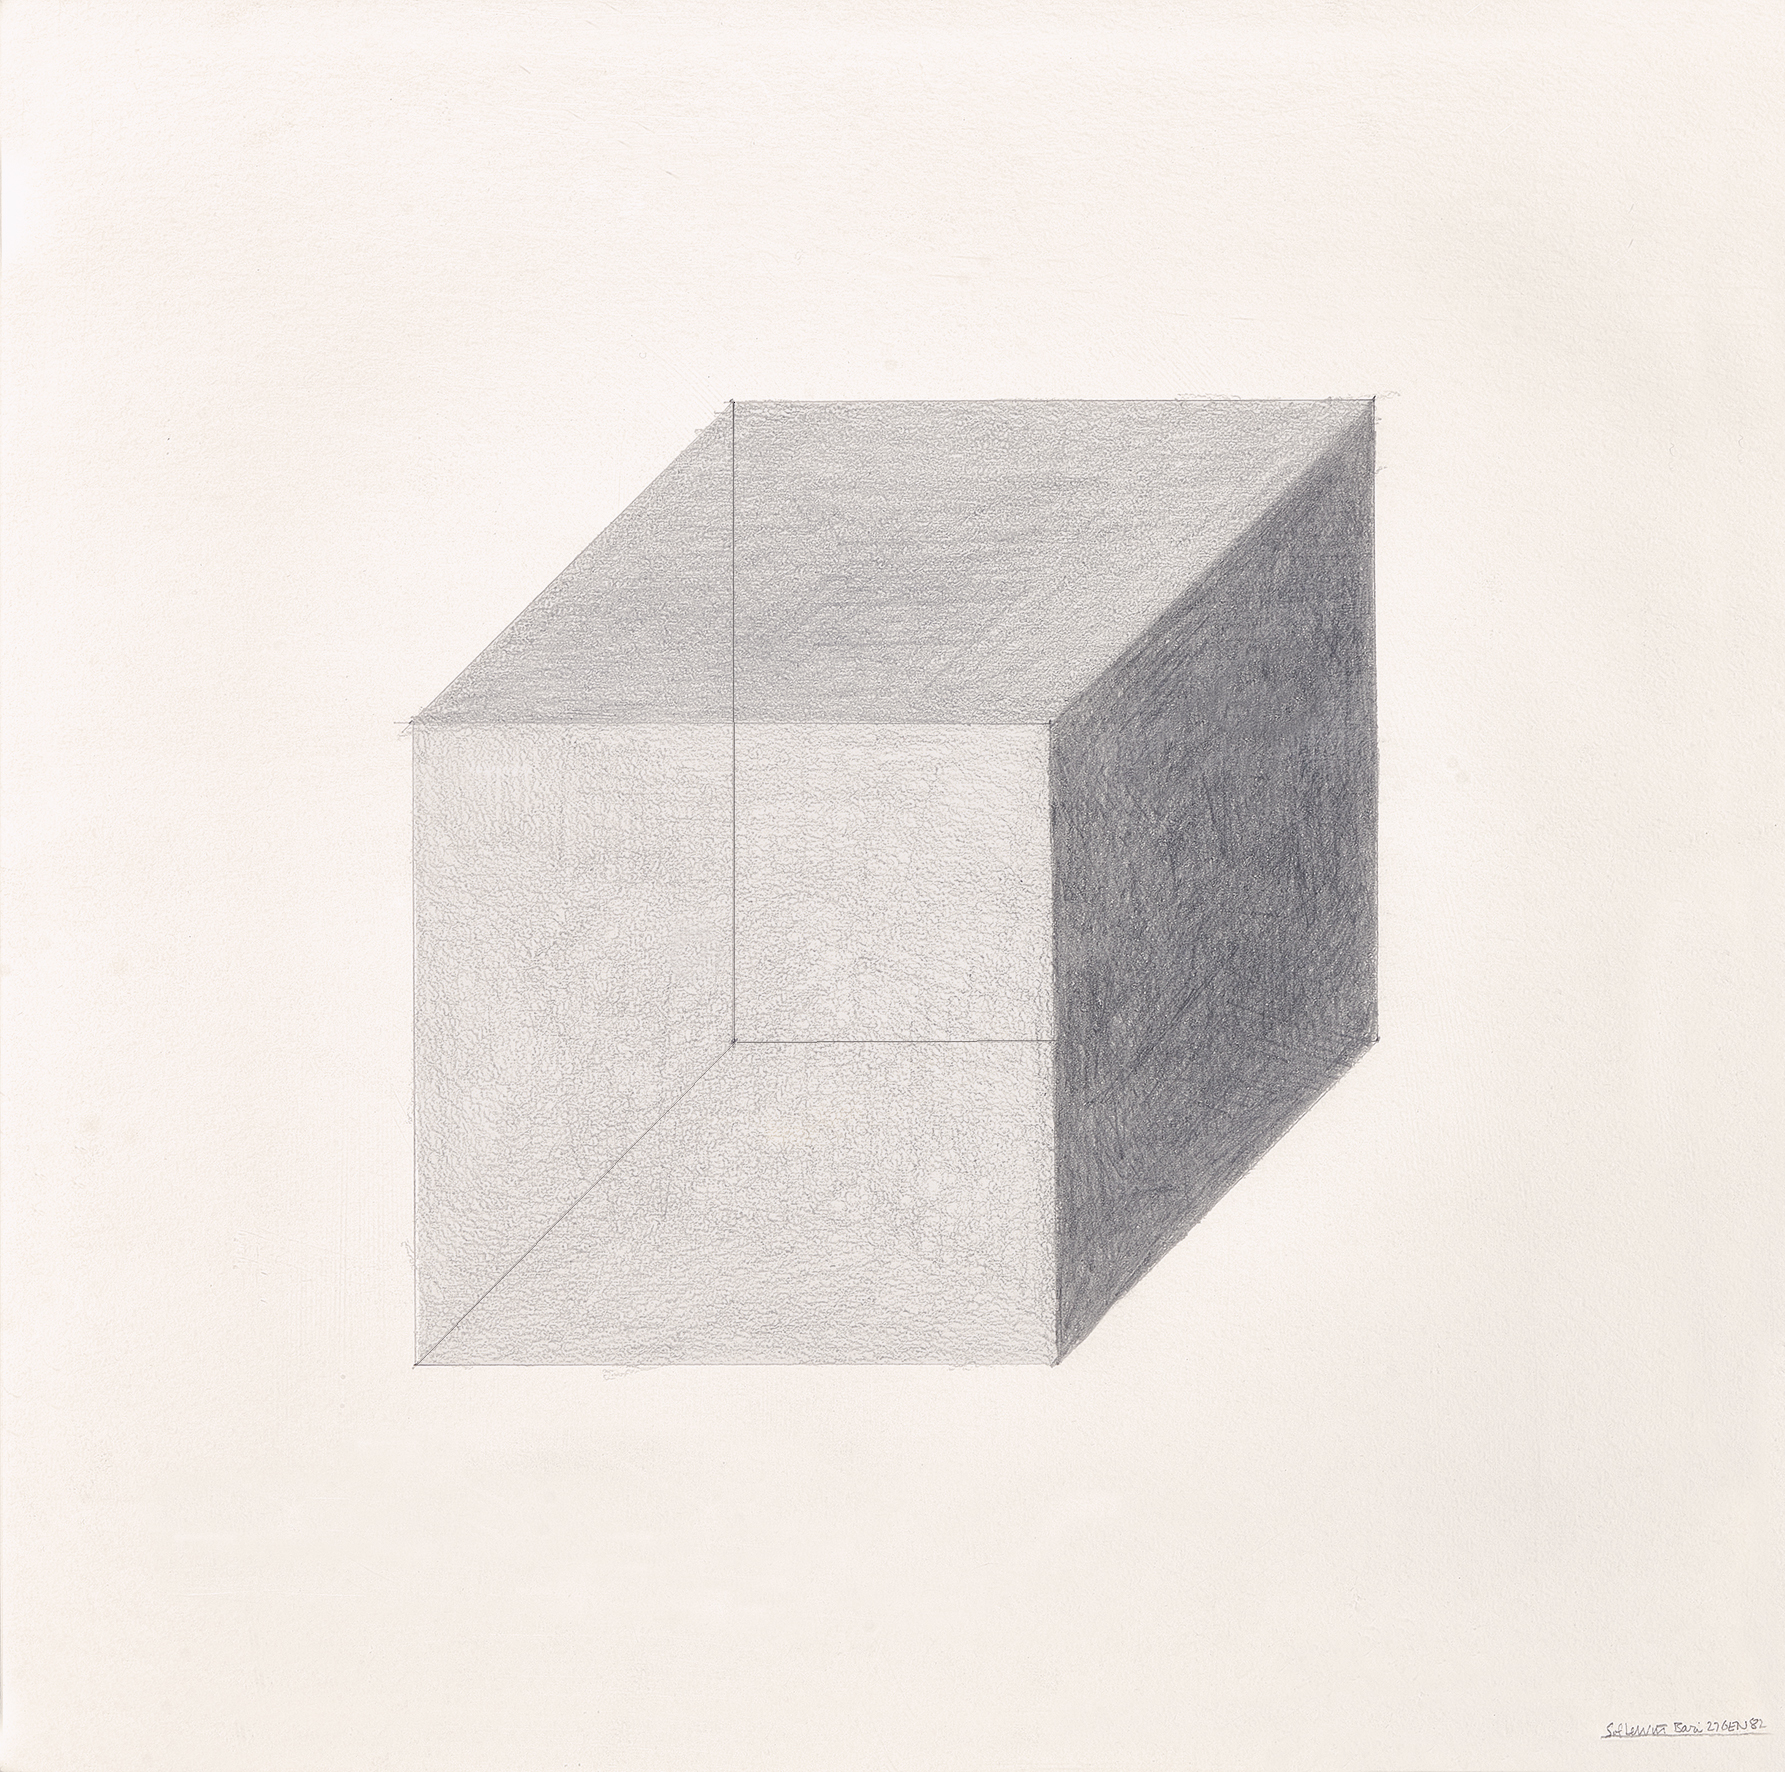 LeWitt Sol, Cube on Perspective